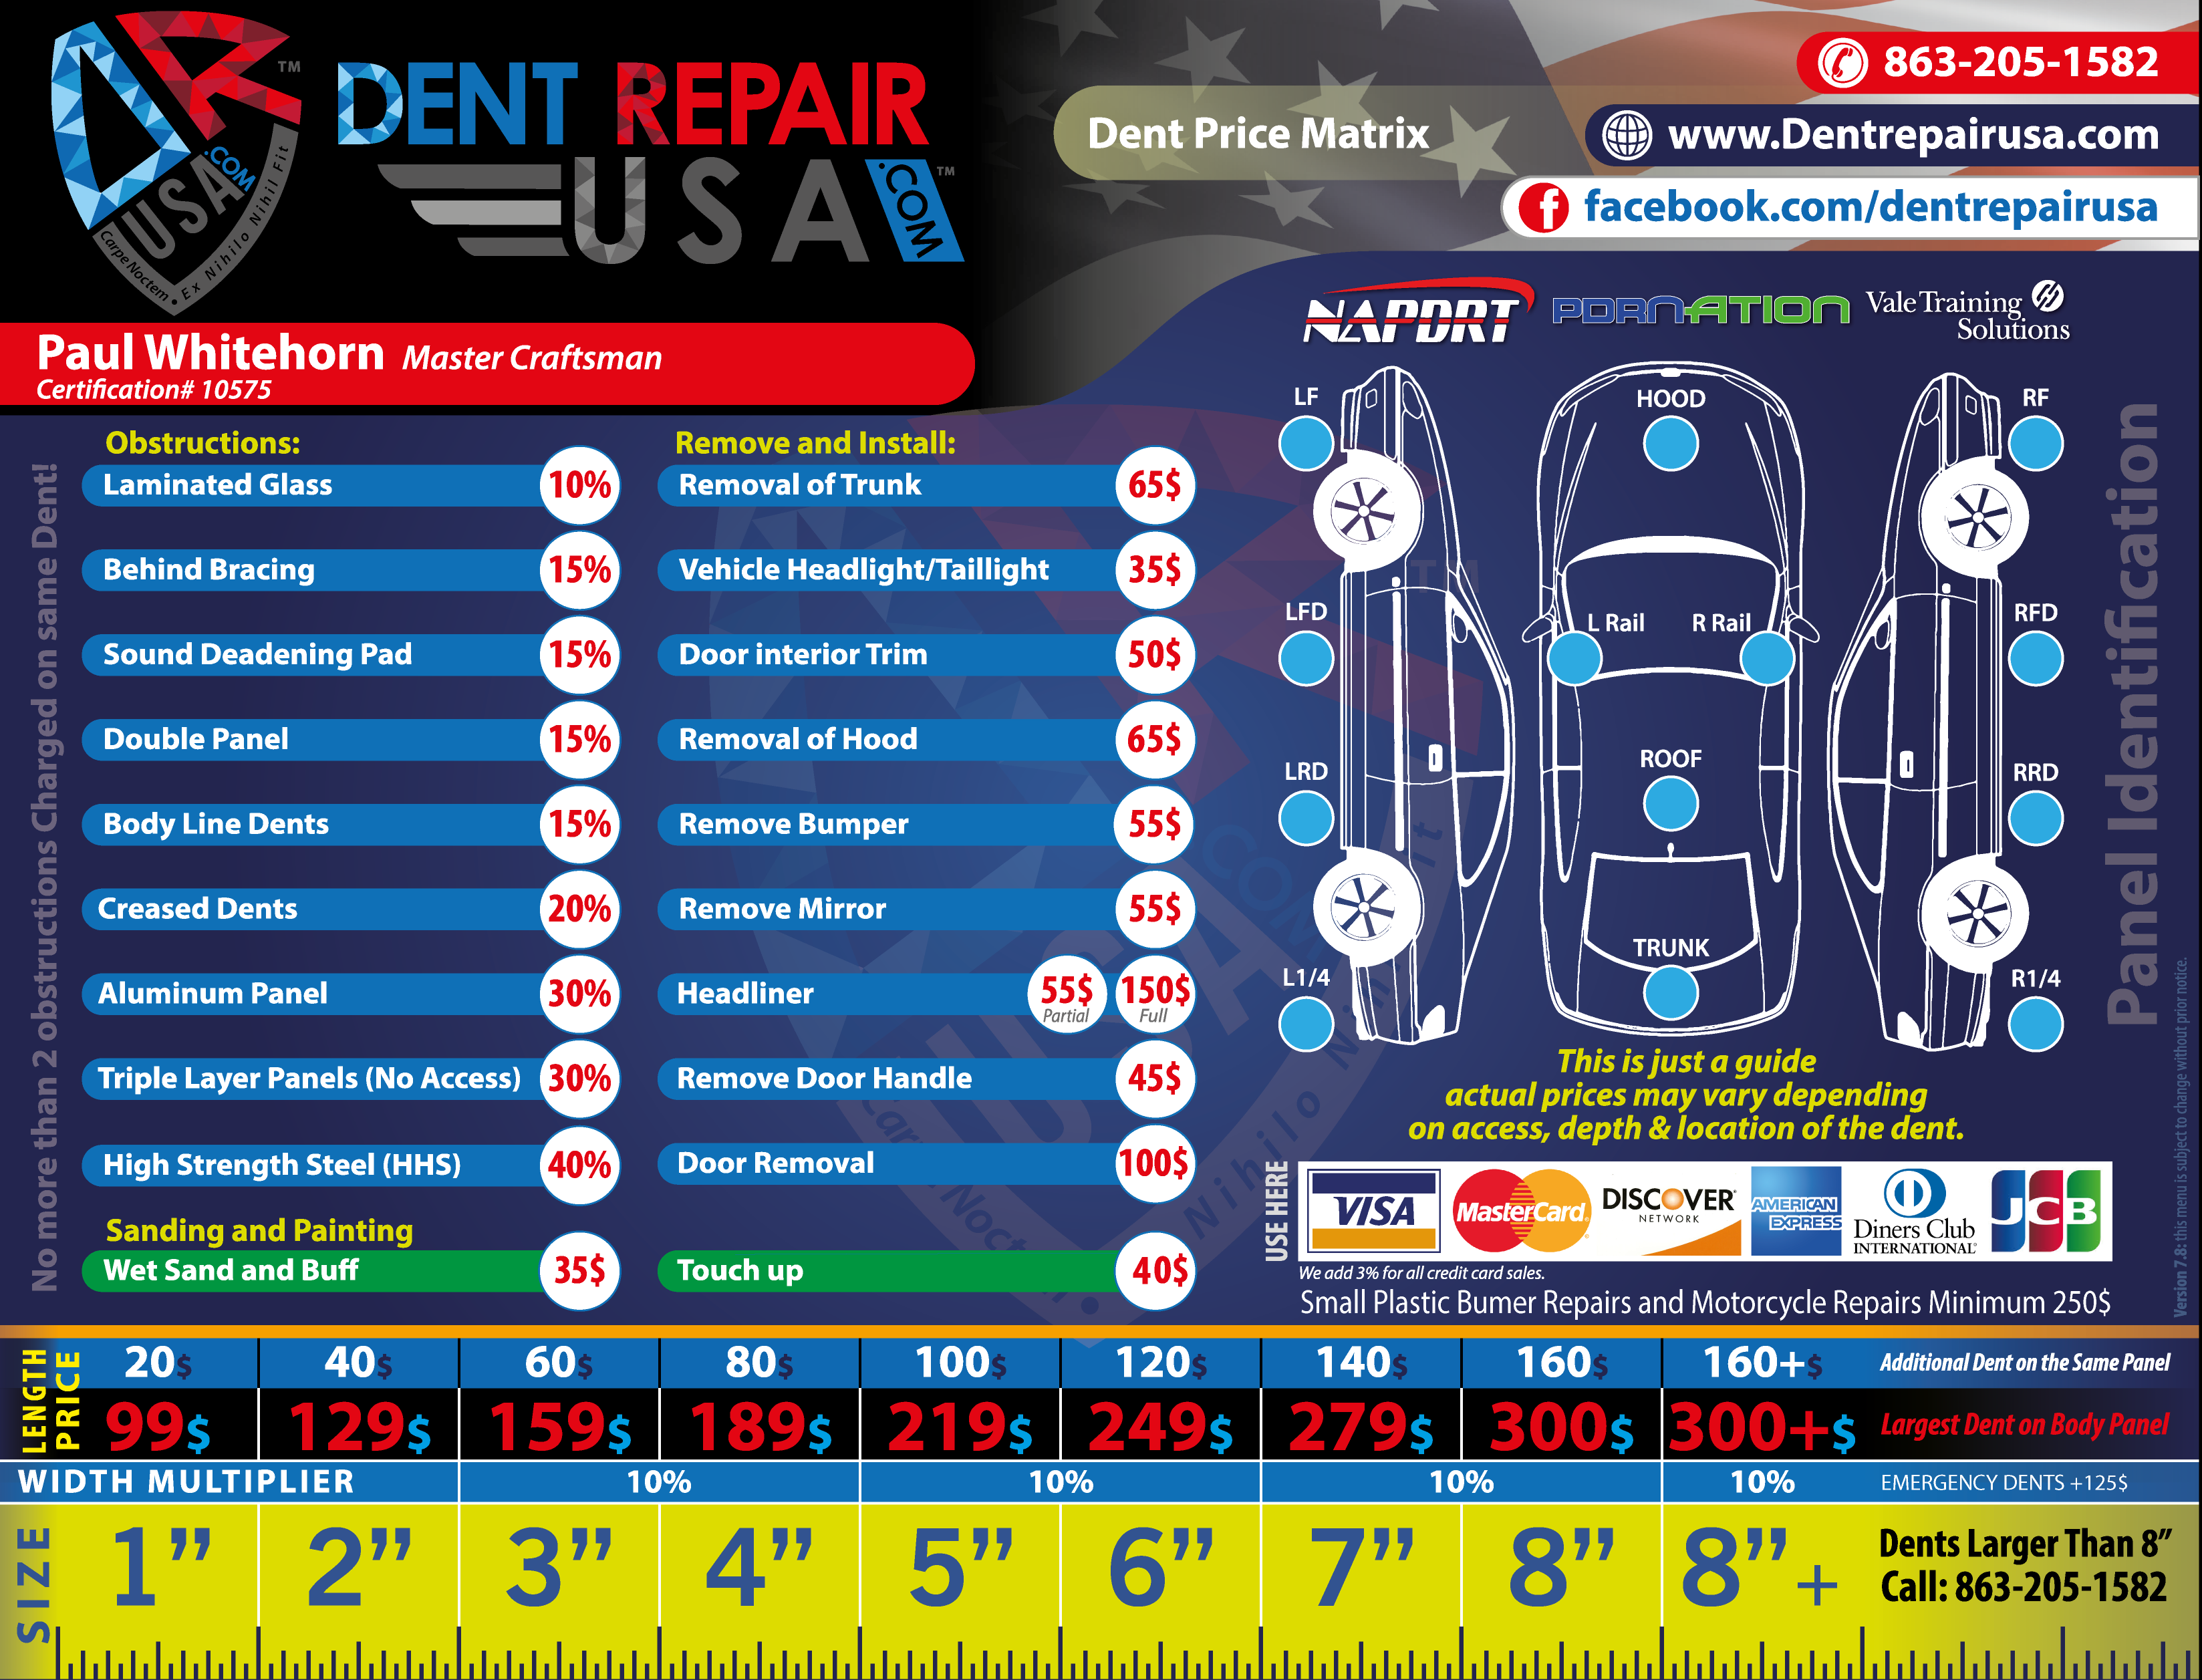 Dent Repair Pricing Menu